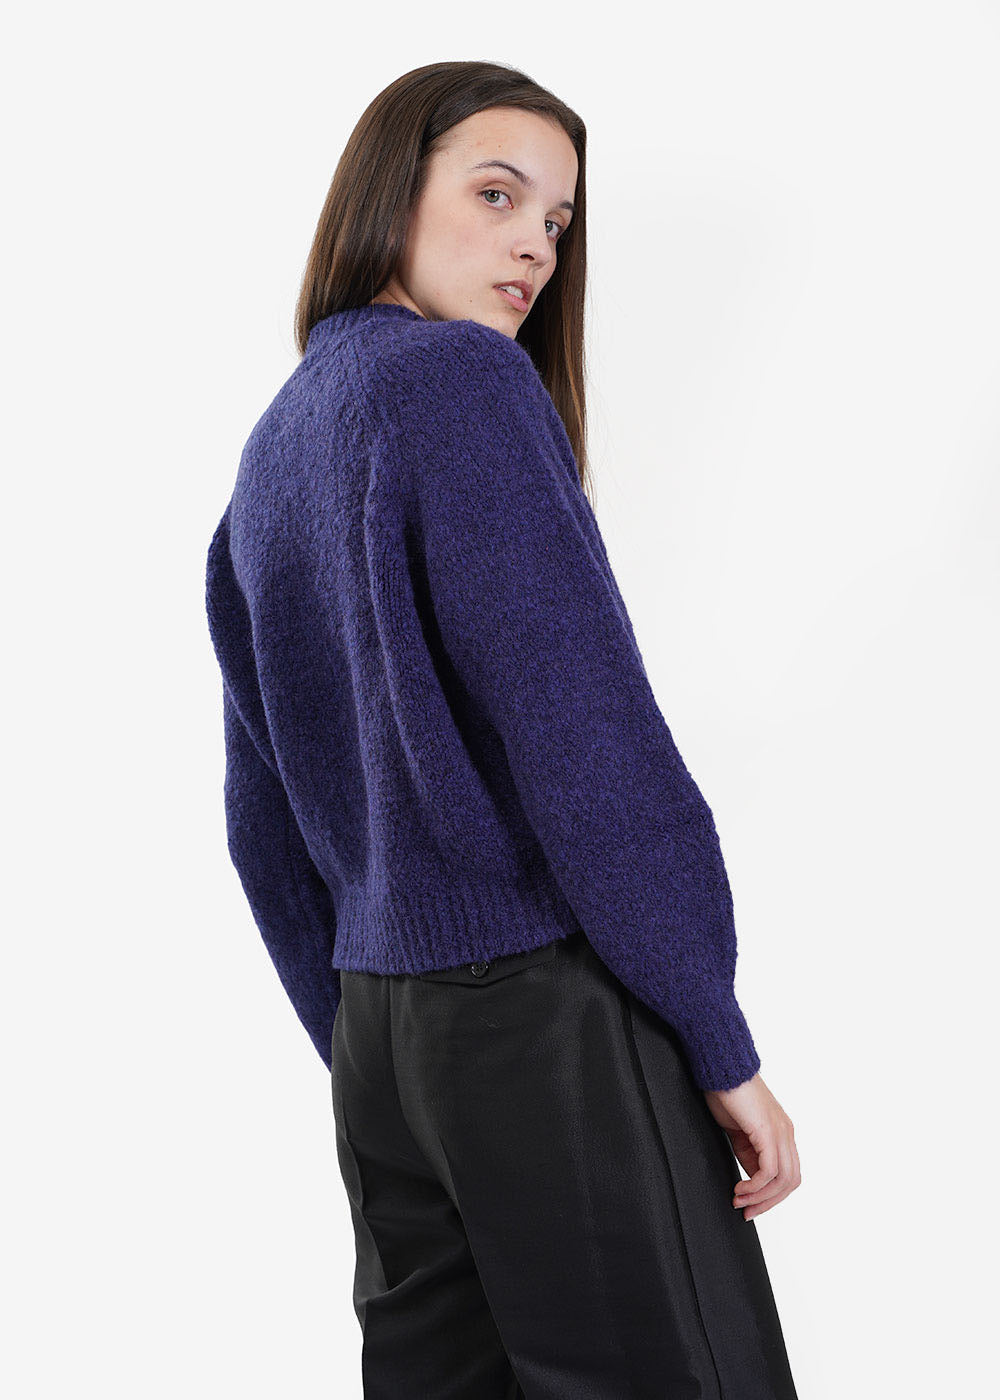 Paloma Wool Pieiro sweater — New Classics Studios